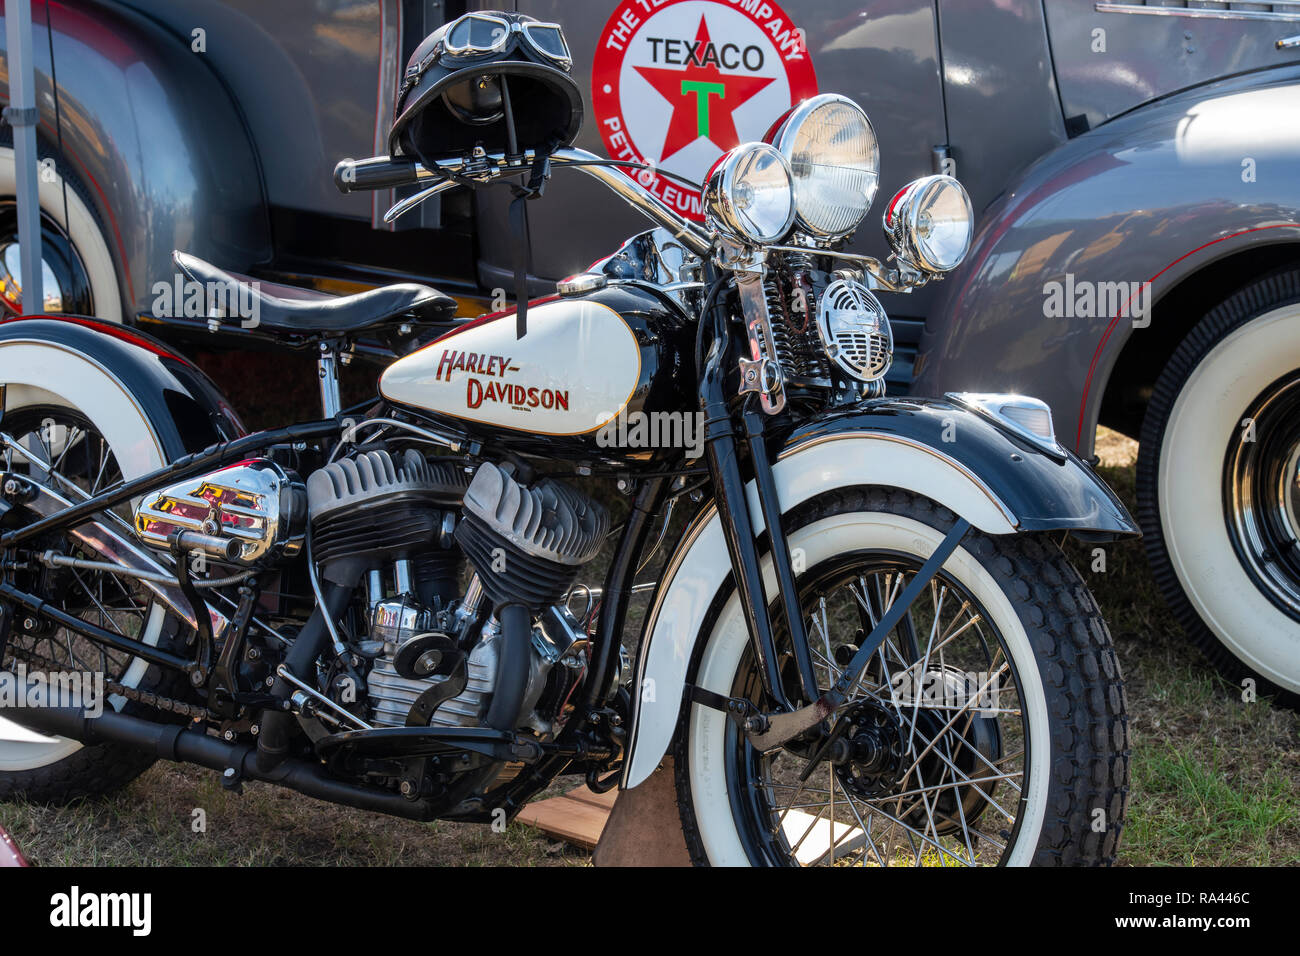 Harley Davidson Flathead Engine Stock Photos & Harley Davidson